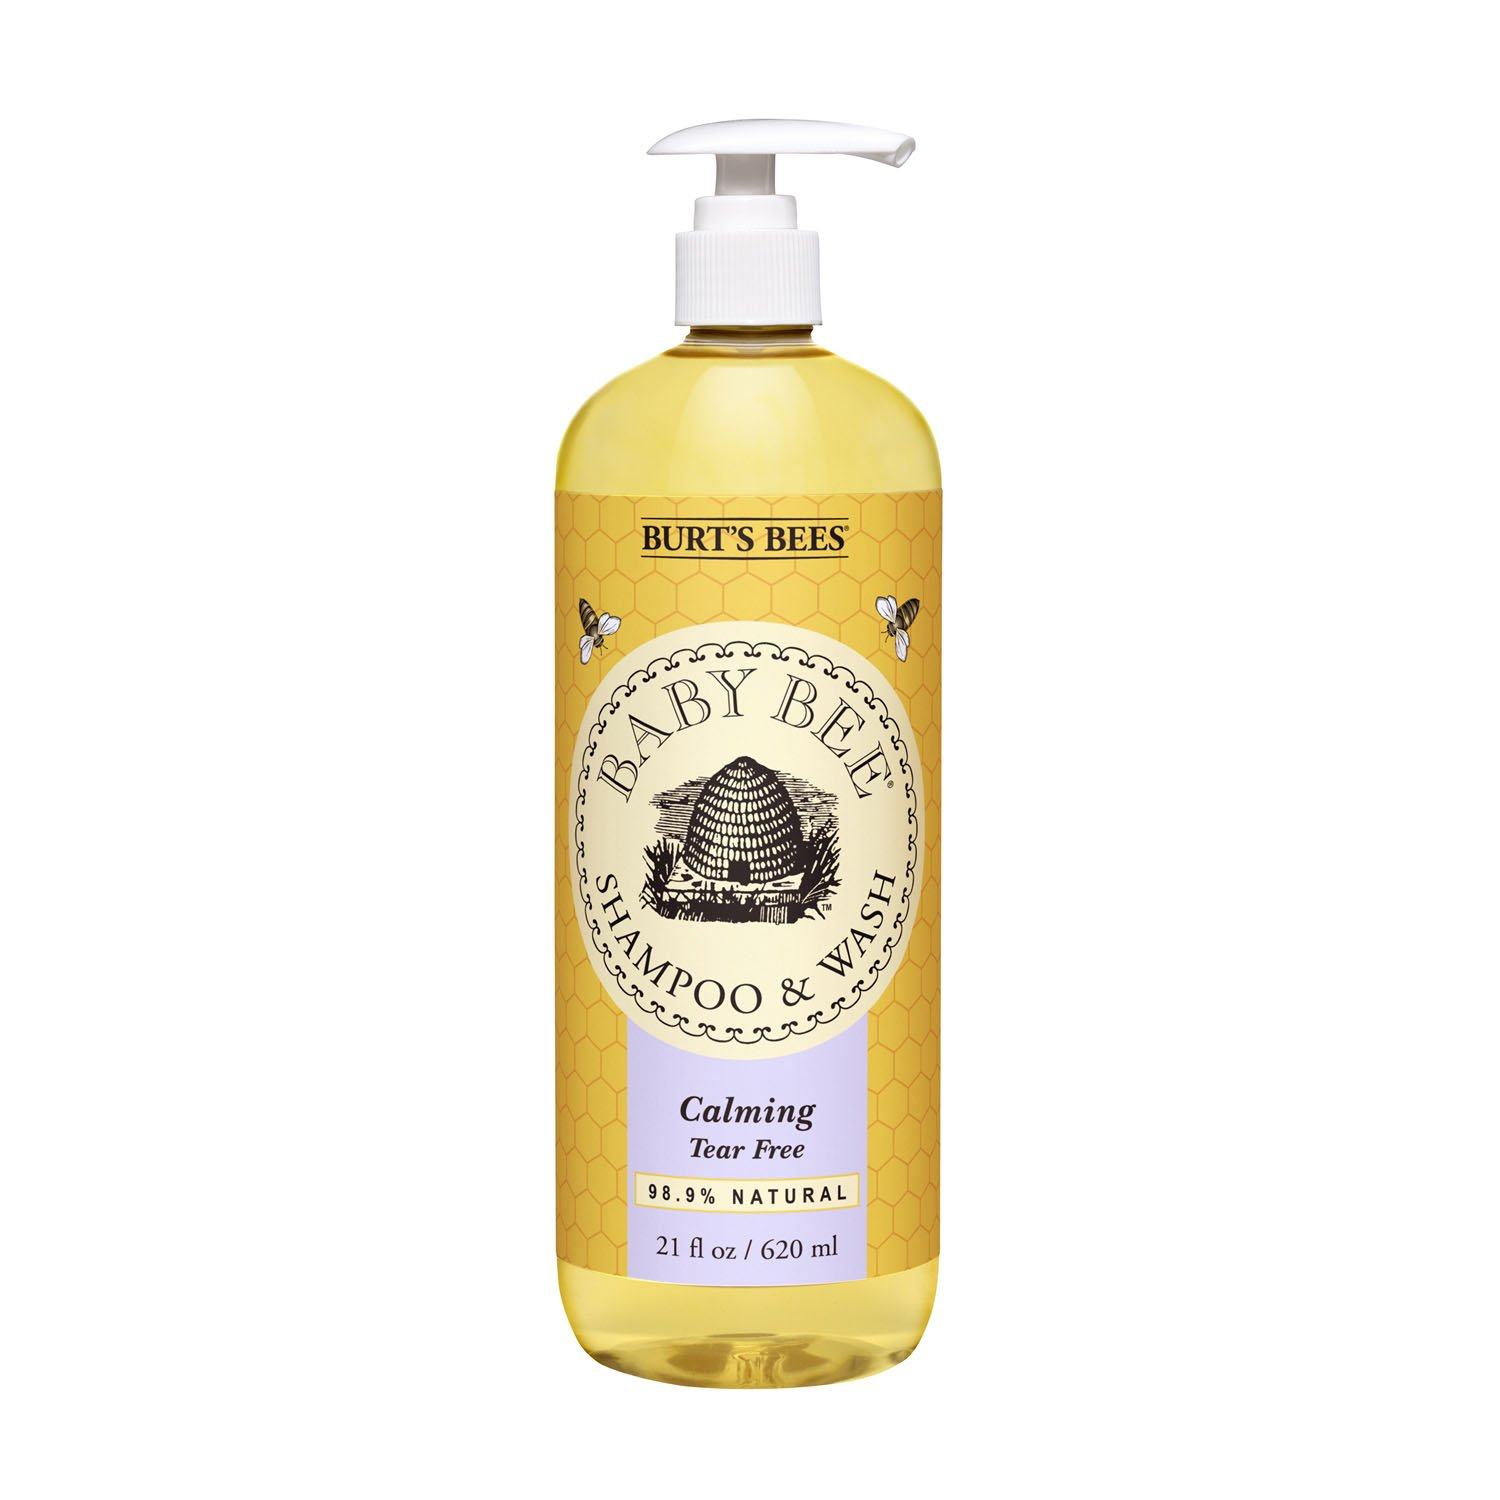 Burt's Bees Baby Bee Shampoo and Wash, Calming, 21 Fluid Ounces (Packaging May Vary) Burt' s Bees K-BB-1076